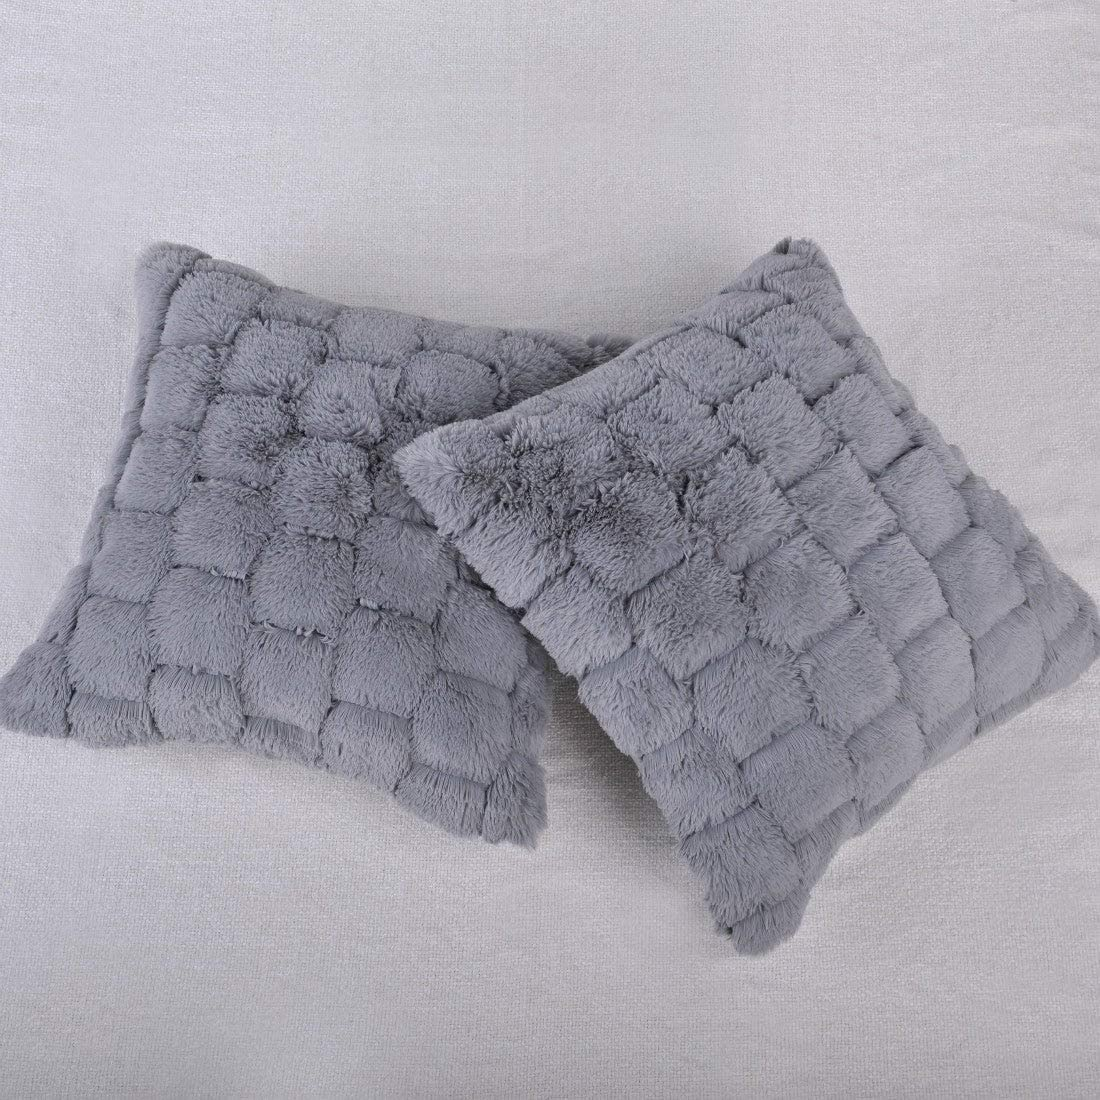 Honeycomb Faux Fur Decorative Throw Pillow Cover (Set 2) Grey Silver Solid Color Modern Contemporary Faux Fur Microfiber Polyester Set 2 Removable